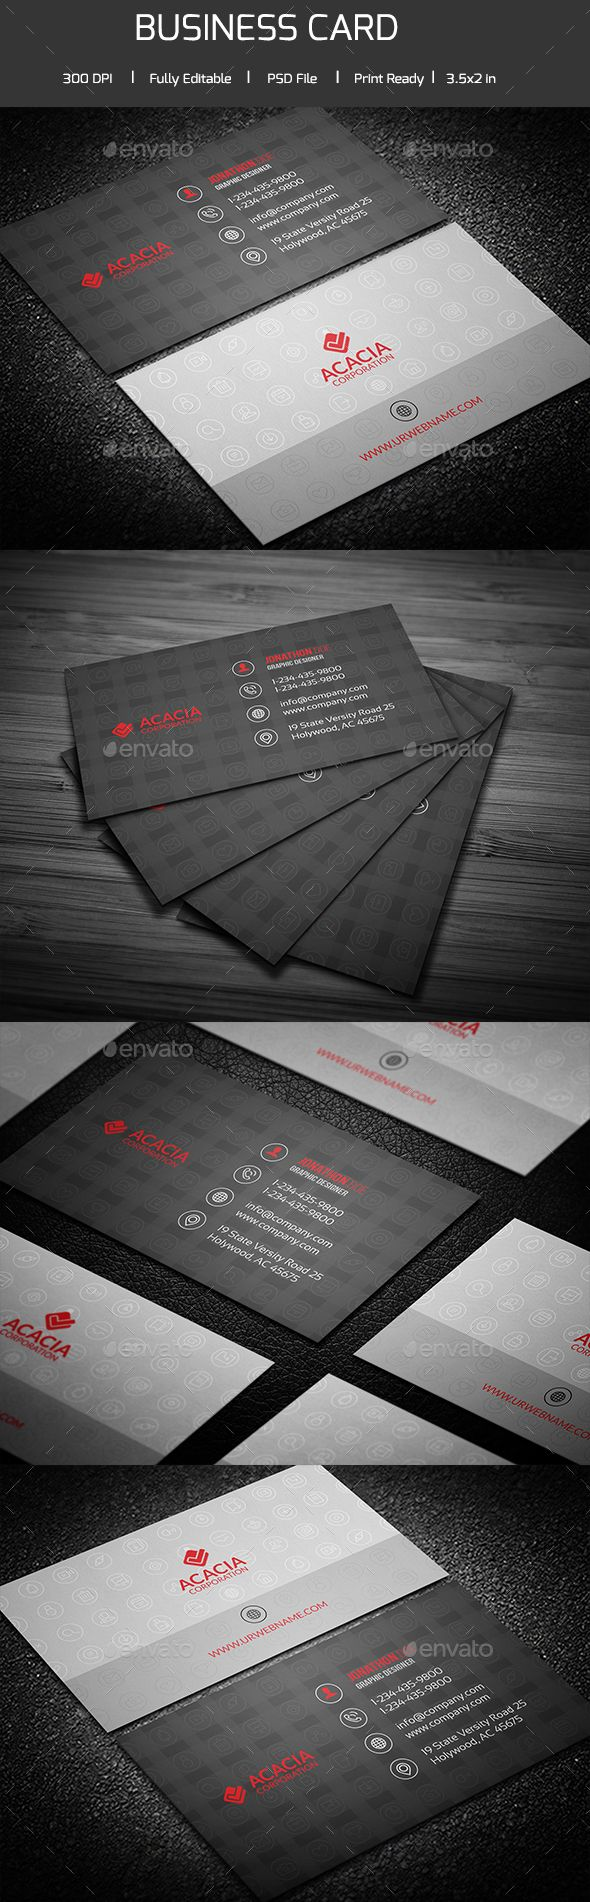 1439 best cool business cards on pinterest images on pinterest 1439 best cool business cards on pinterest images on pinterest advertising cards and cleanses magicingreecefo Choice Image